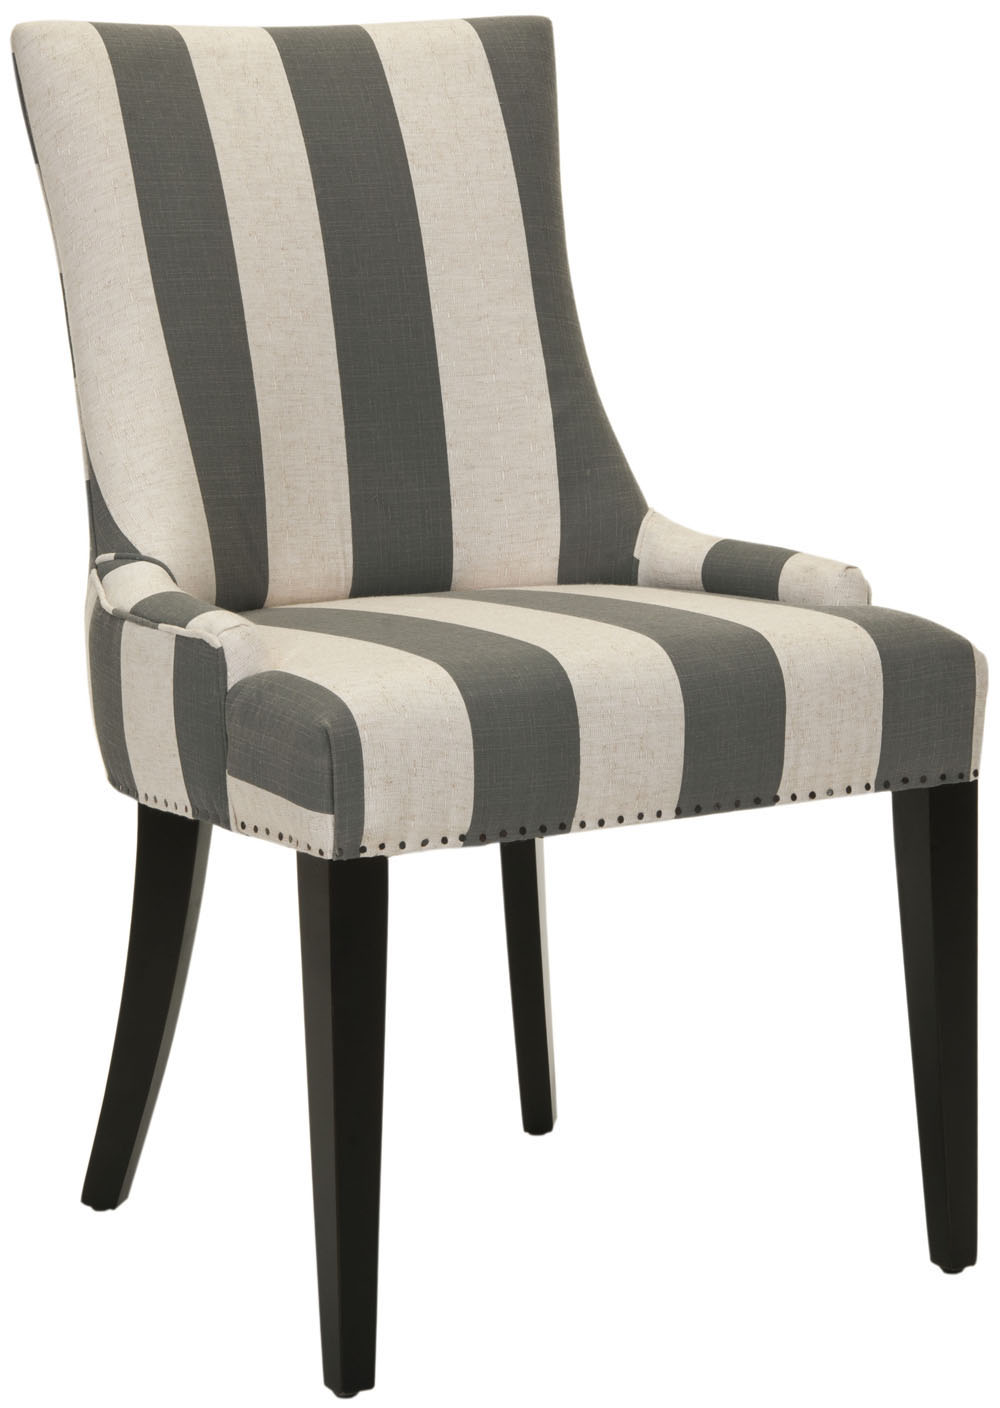 fabric dining chair - Upholstery Fabric For Chairs